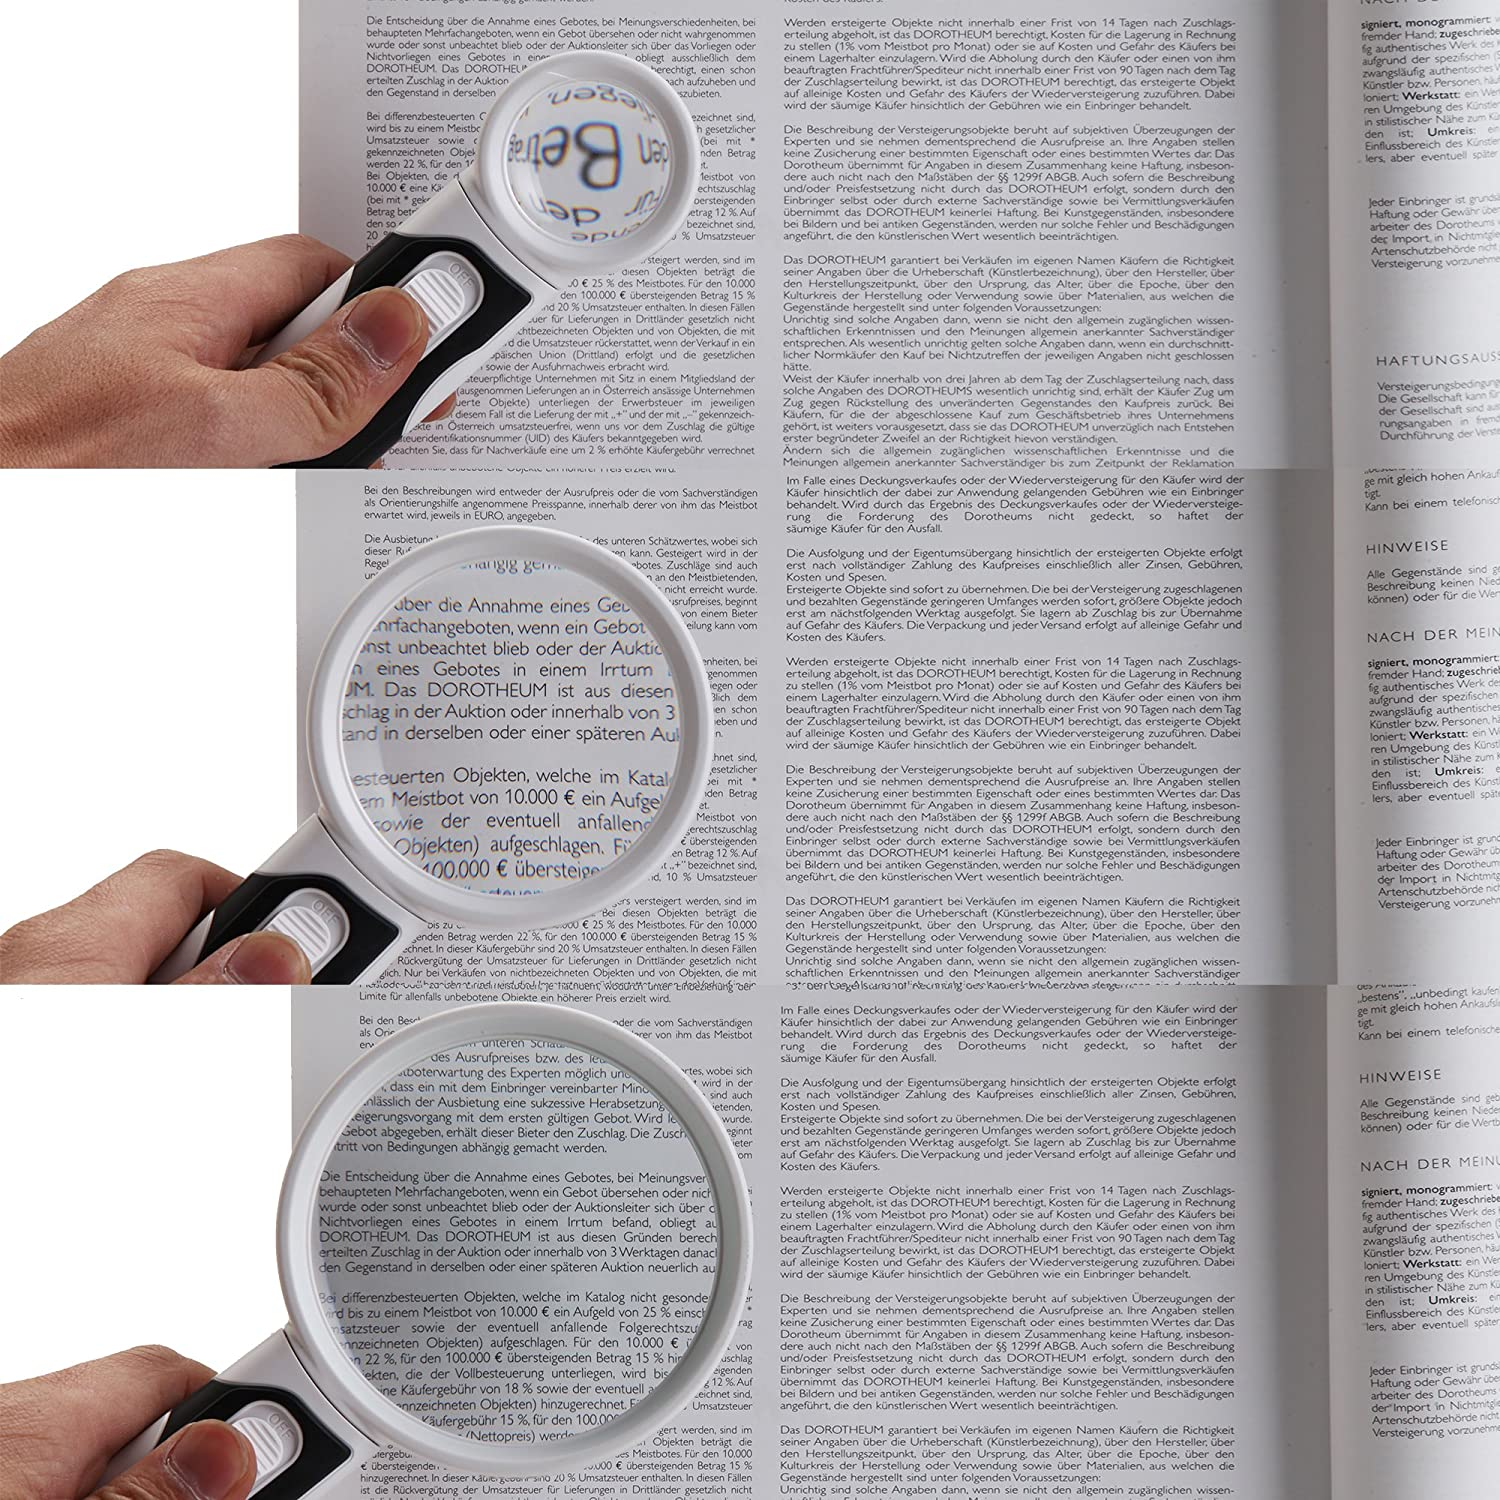 H&S® LED Light Hand held Magnifier Reading Magnifying Glass Handheld ...